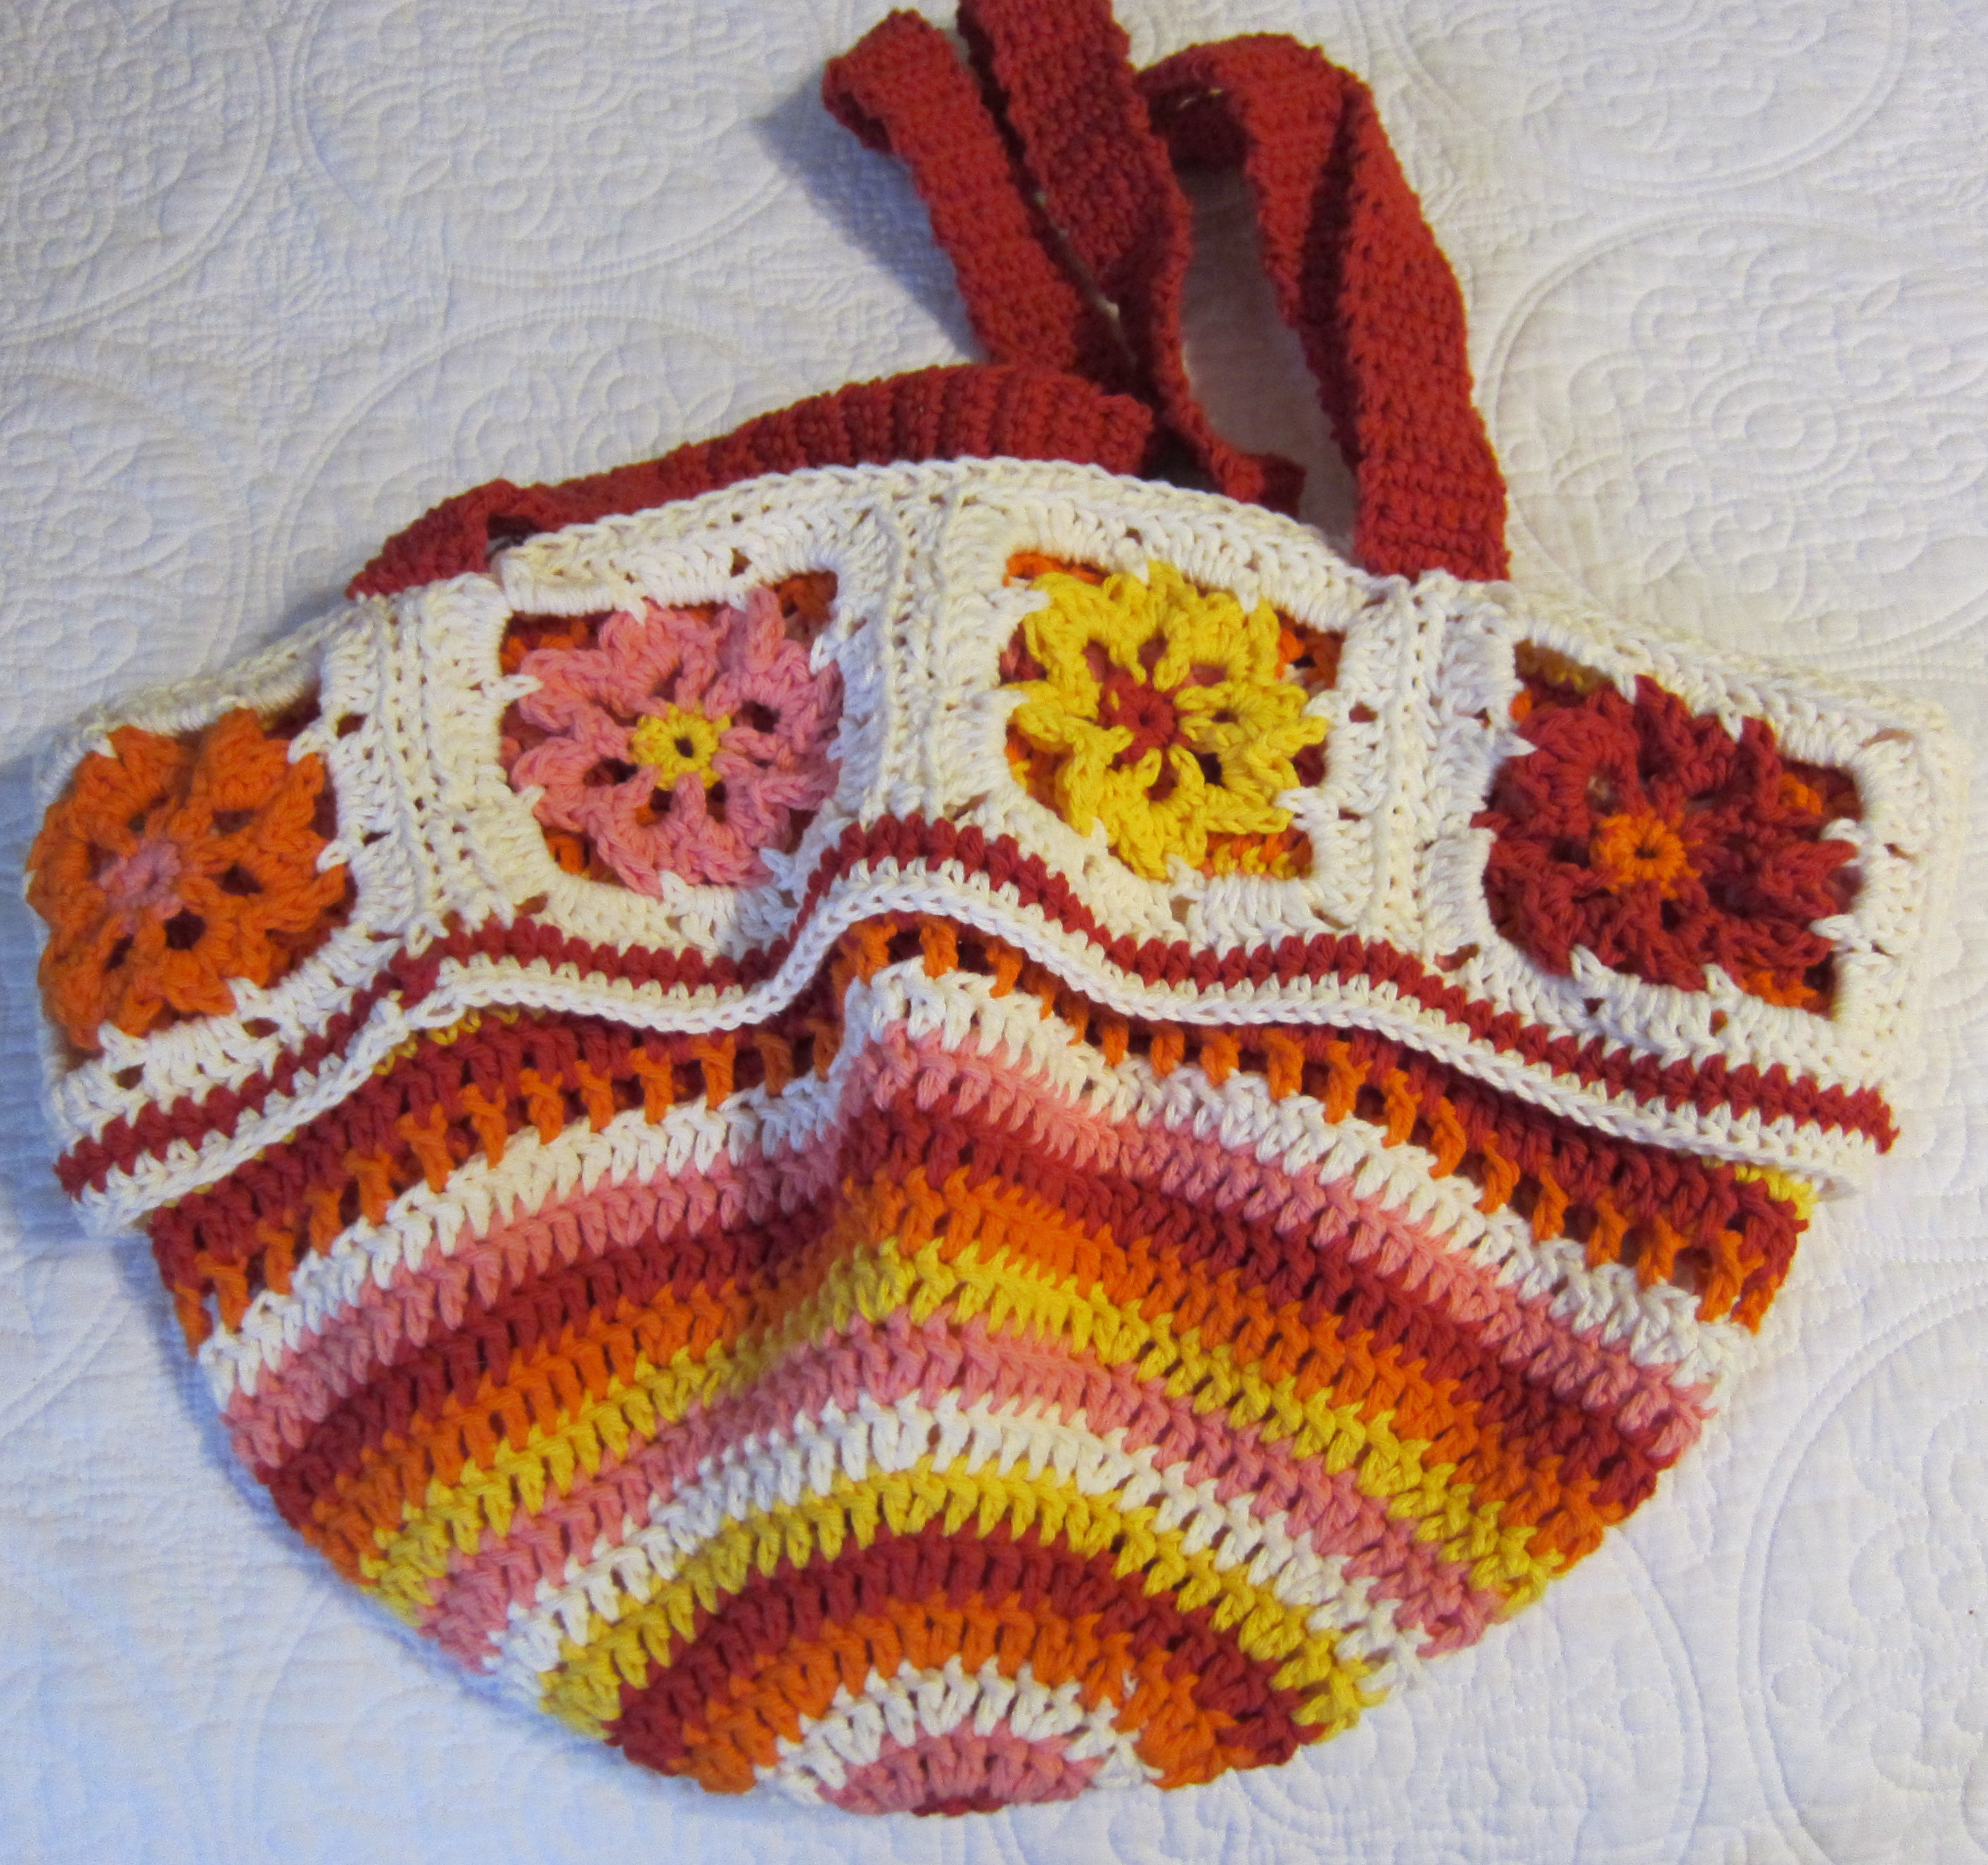 Crochet Designer Purse Patterns : Crochet Flower Purse/Tote Beautiful Colors with Pretty Spring/Summer ...